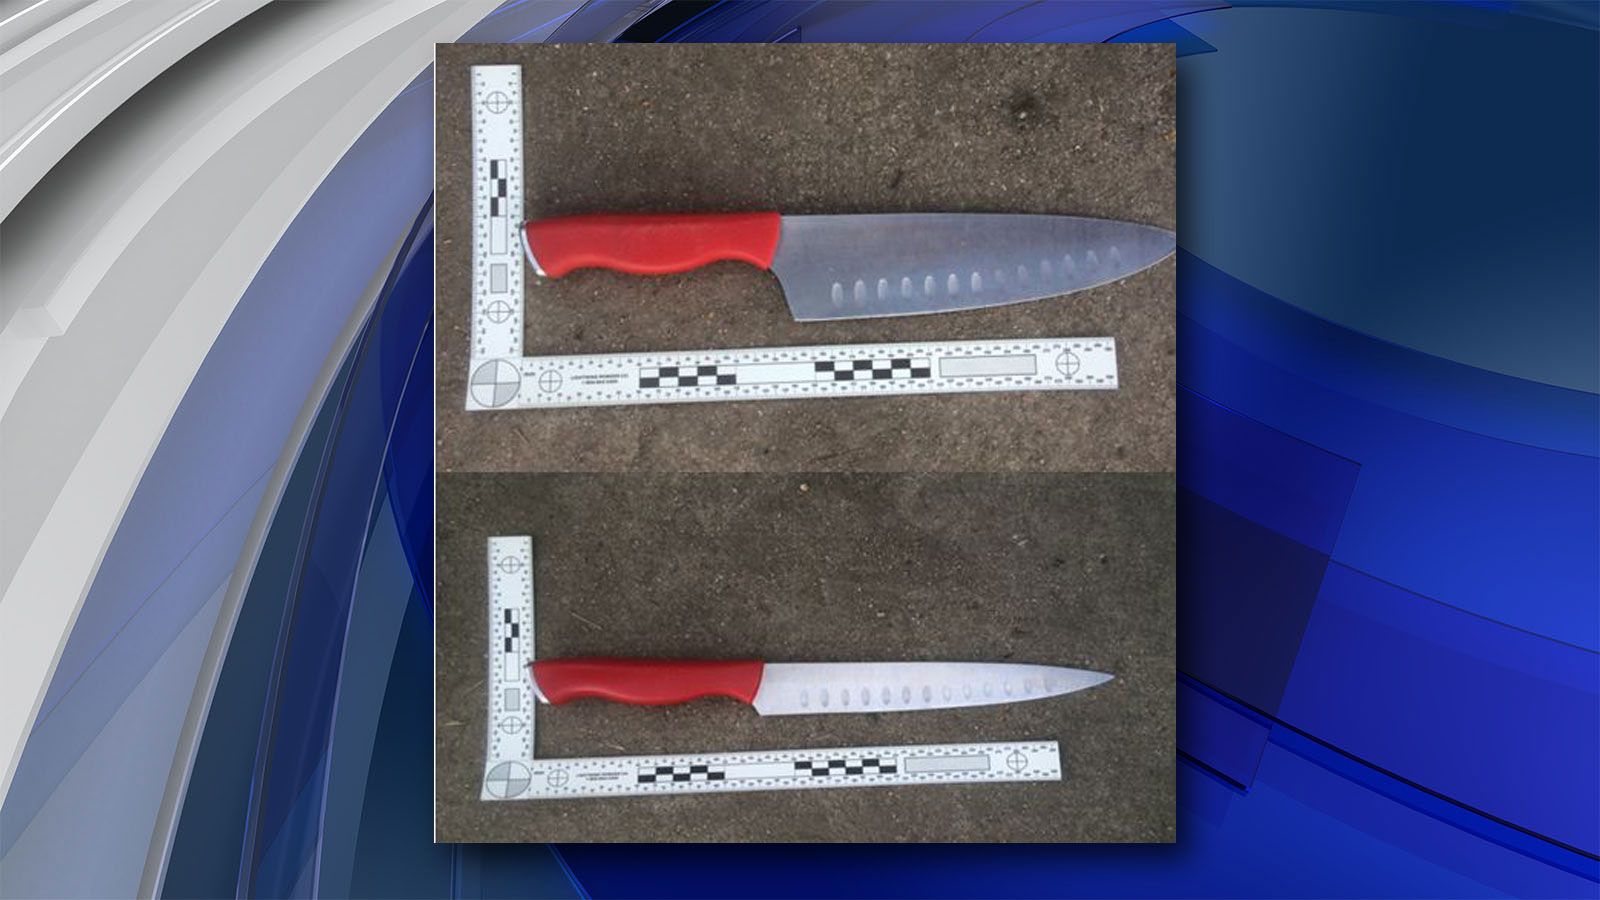 The knives taken from the suspect (credit: Longmont Police Department)